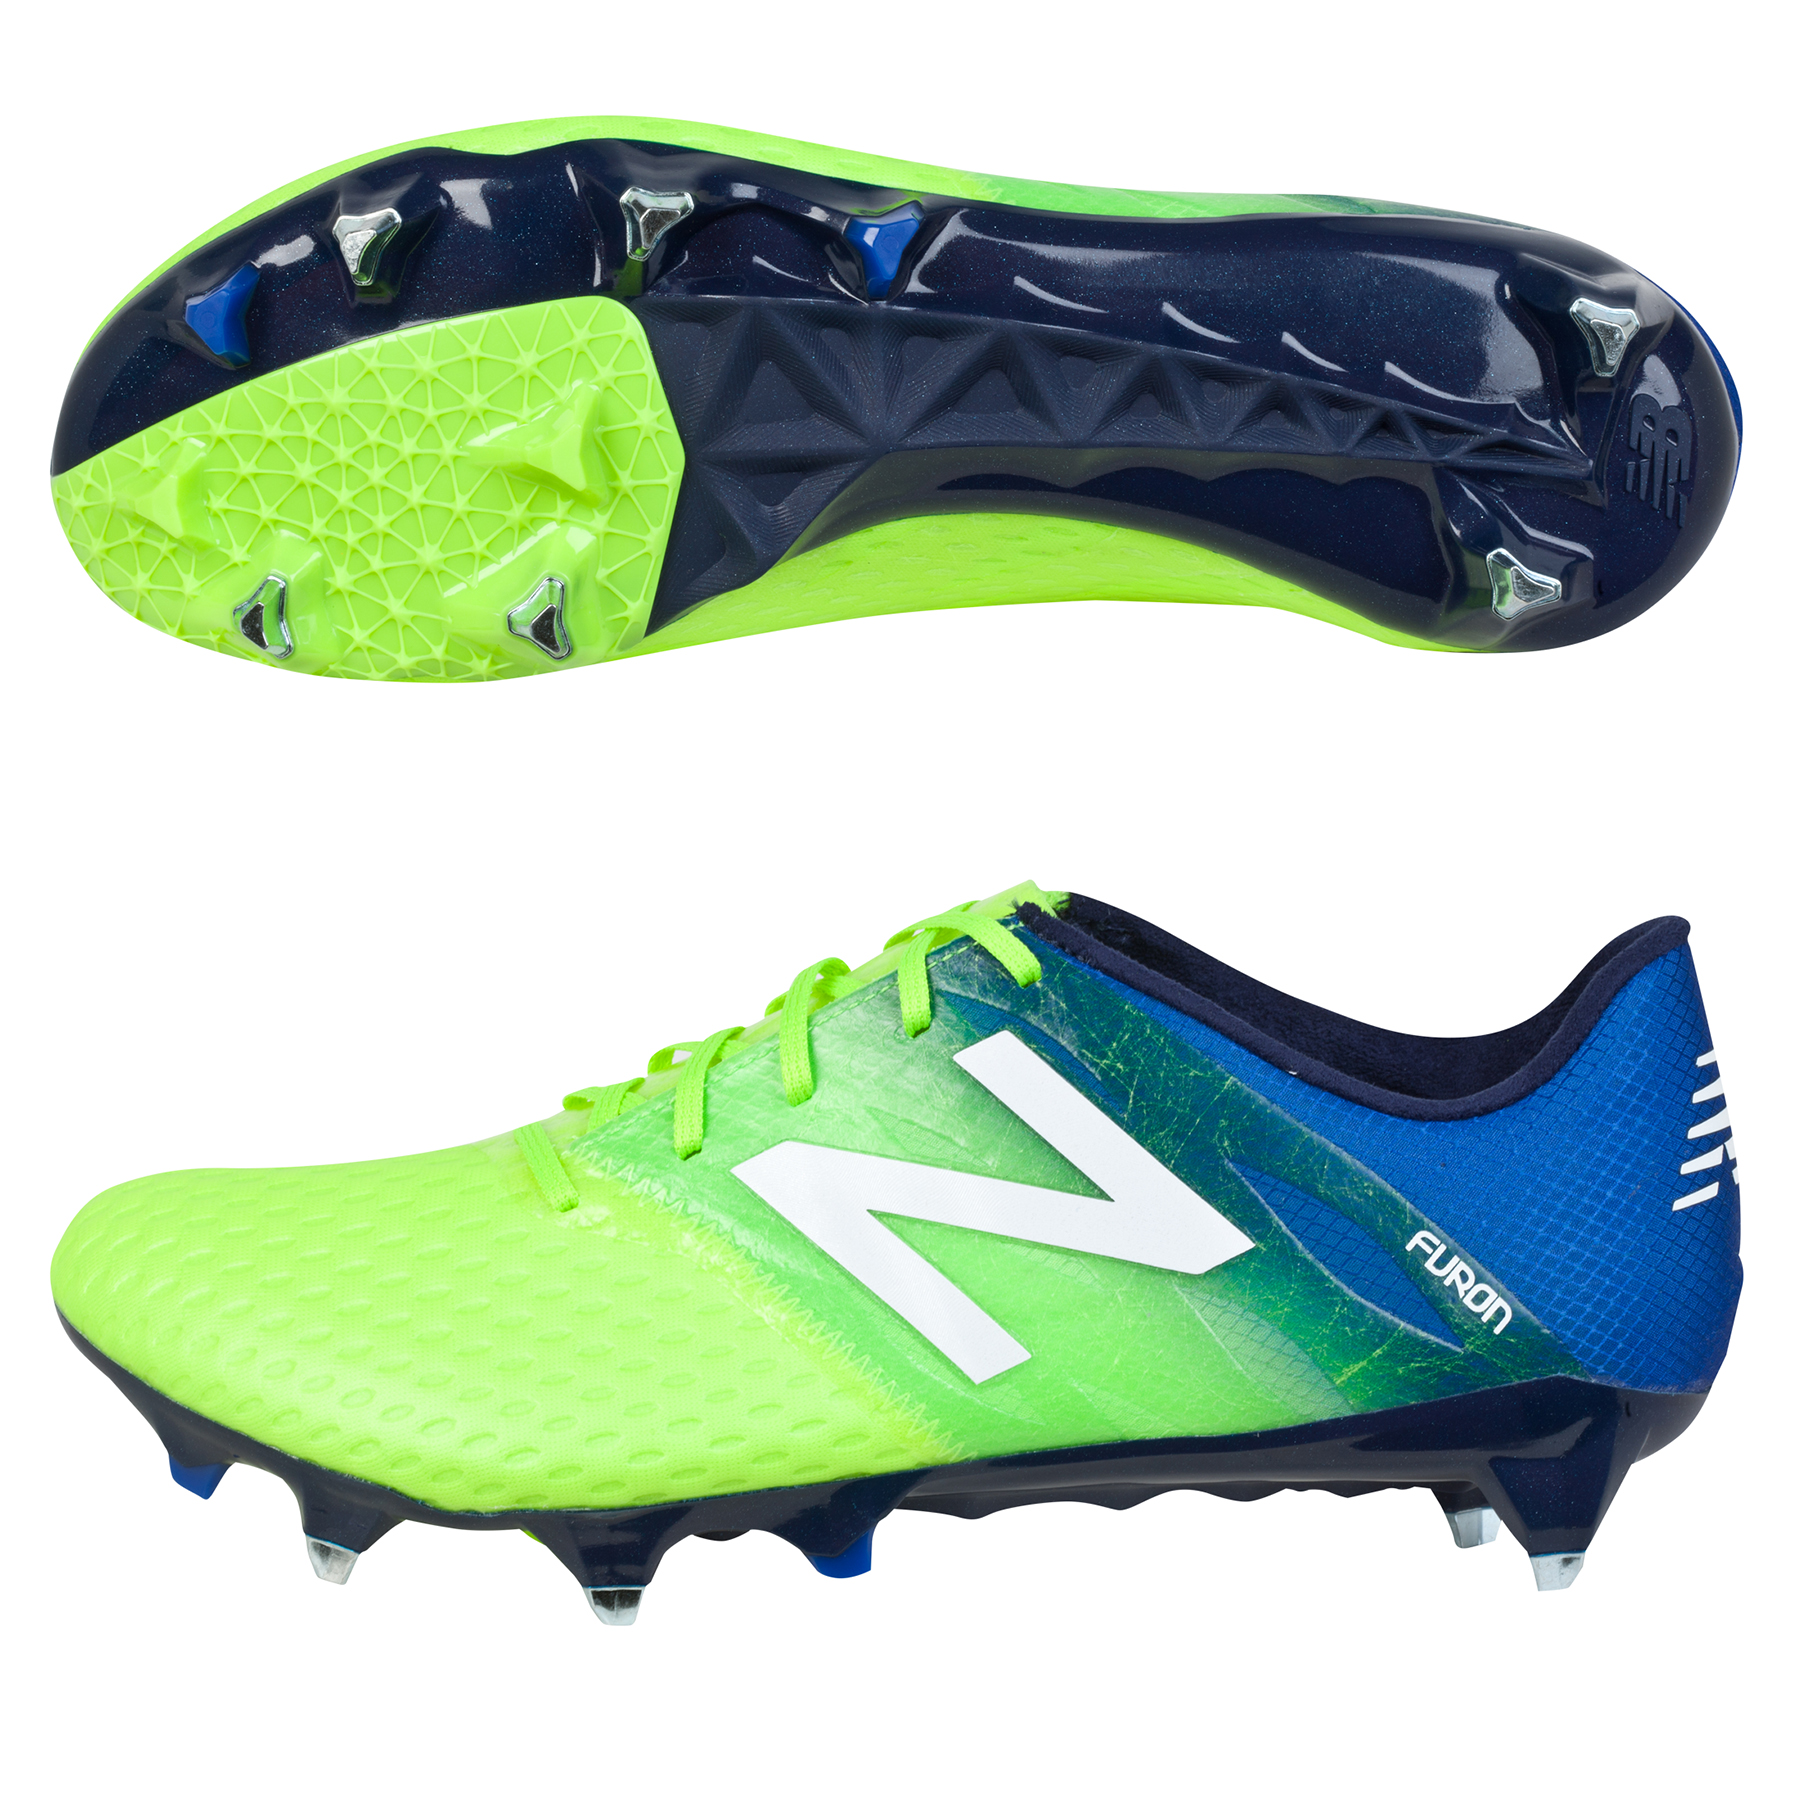 New Balance Furon Pro Soft Ground Football Boots Green